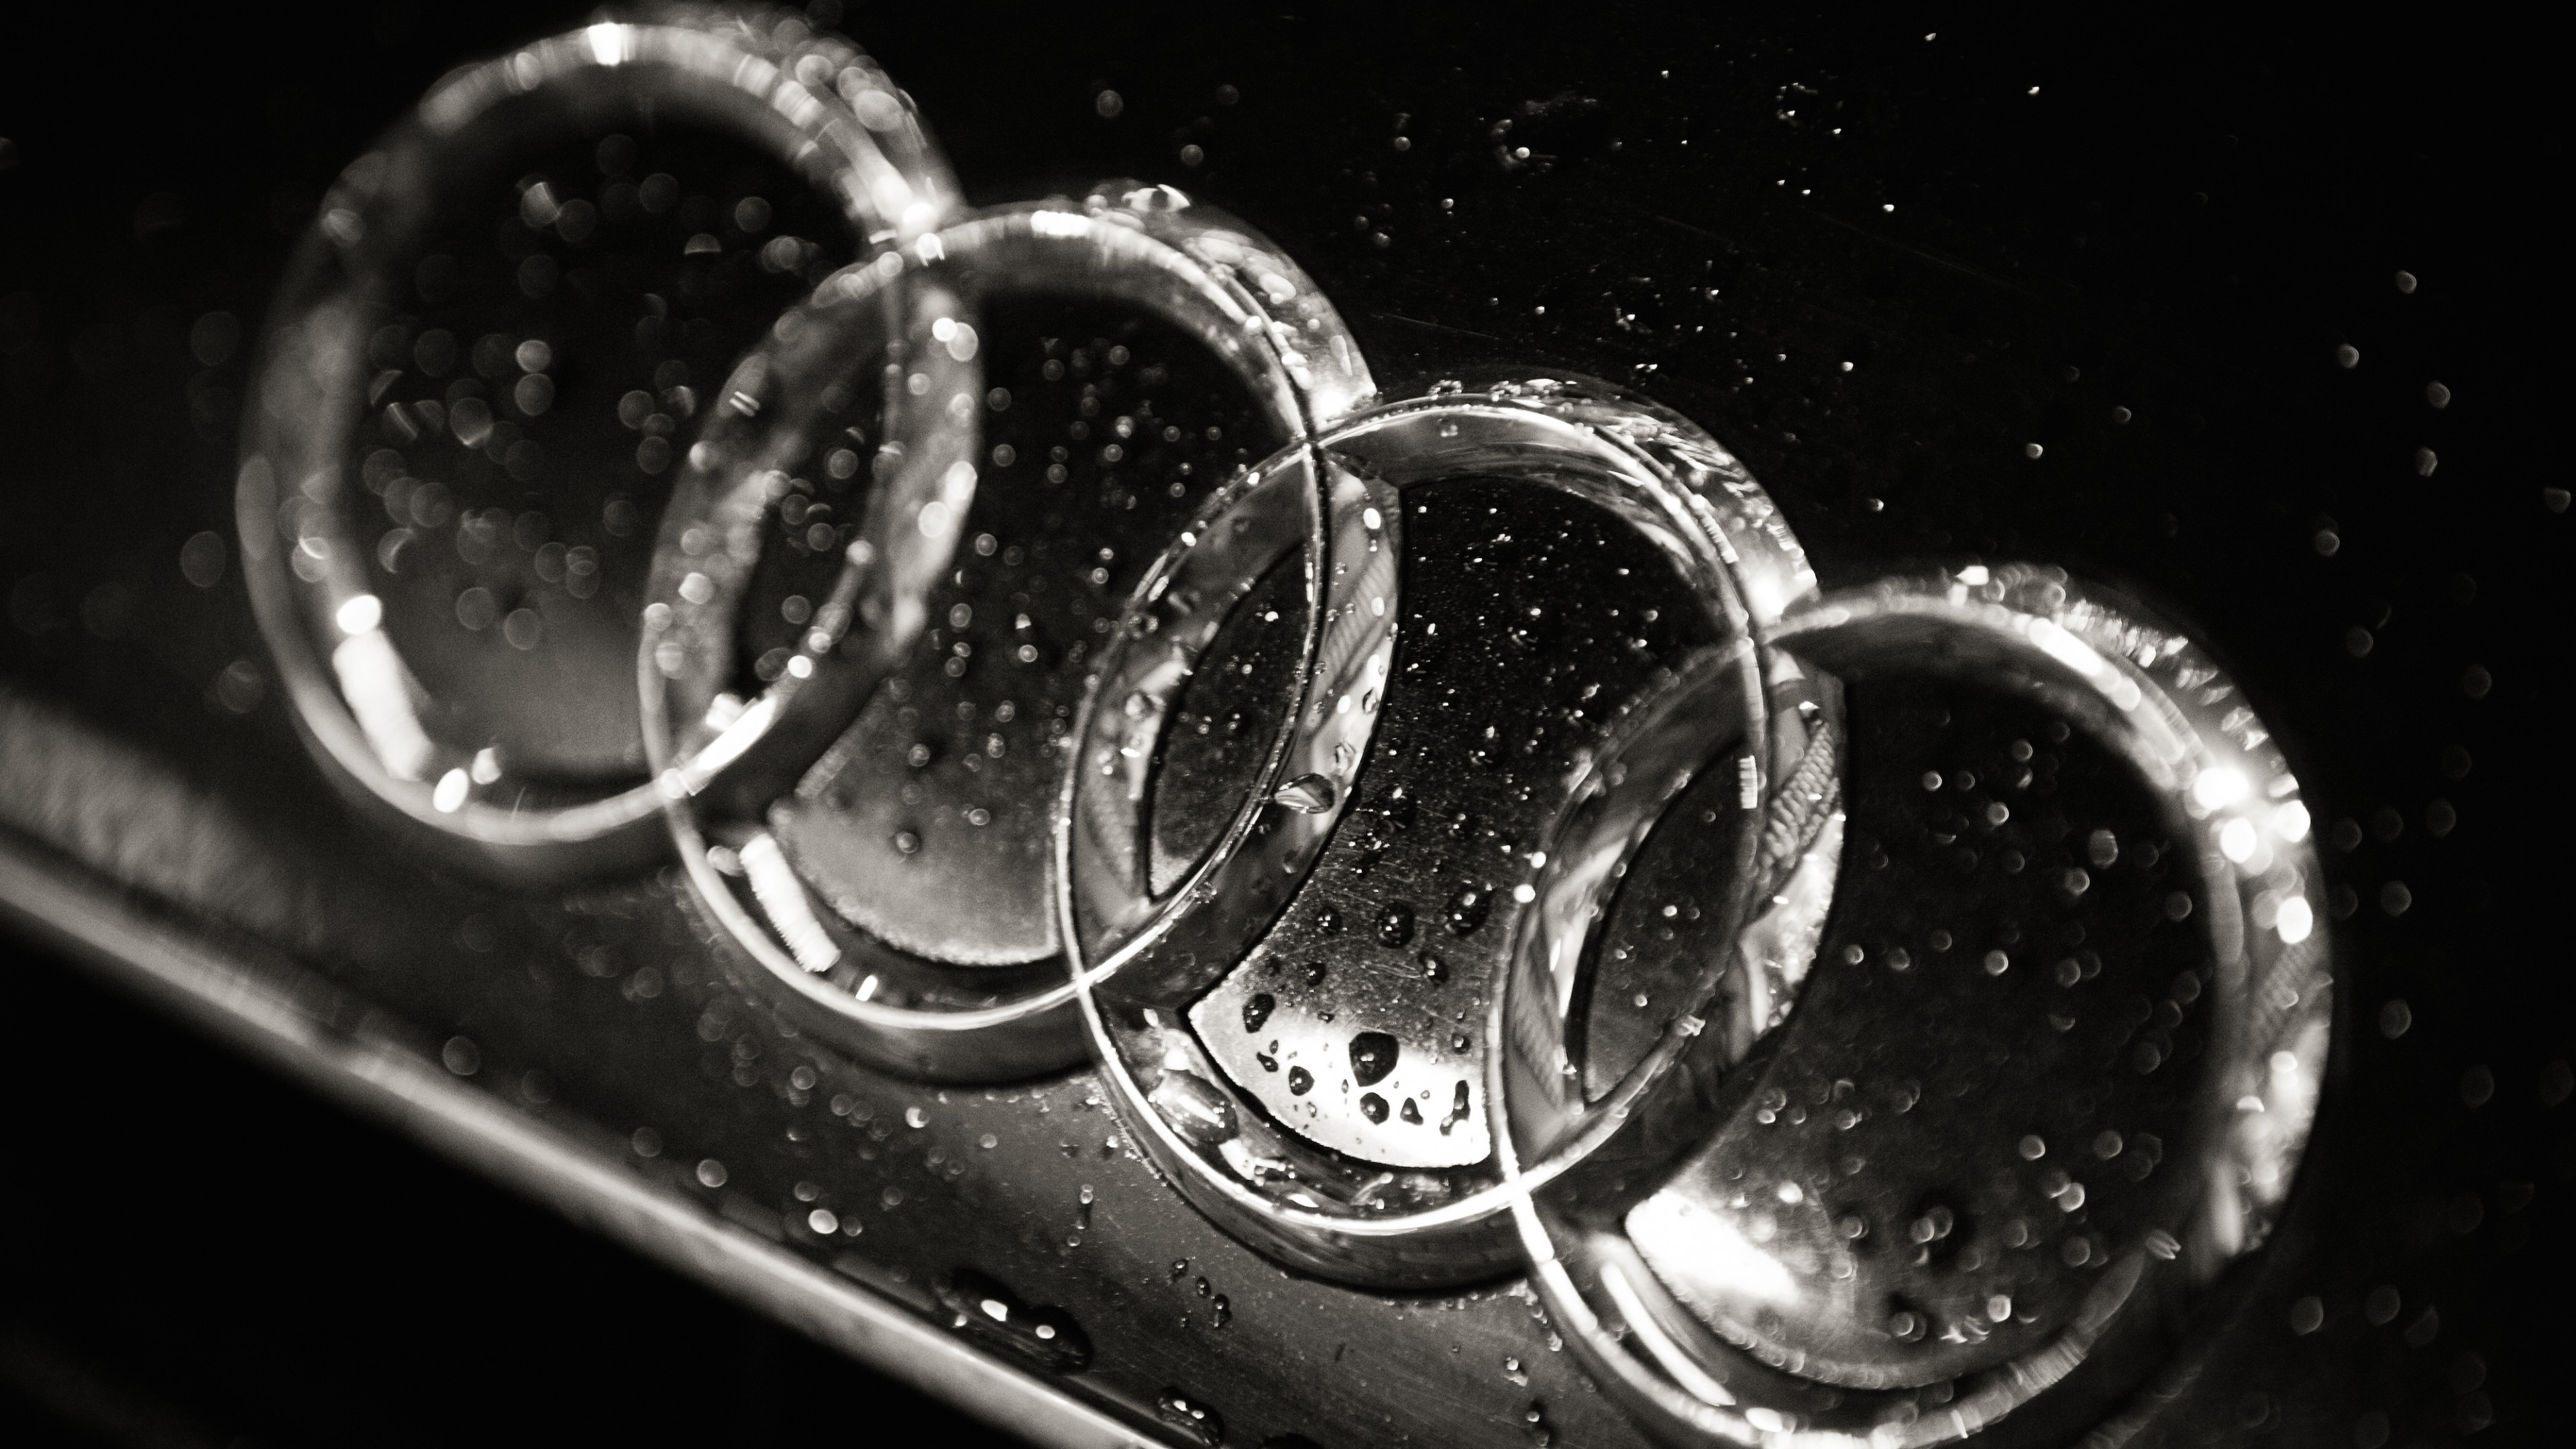 audi 4k ultra hd wallpaper and background image | 3840x2160 | id:771187